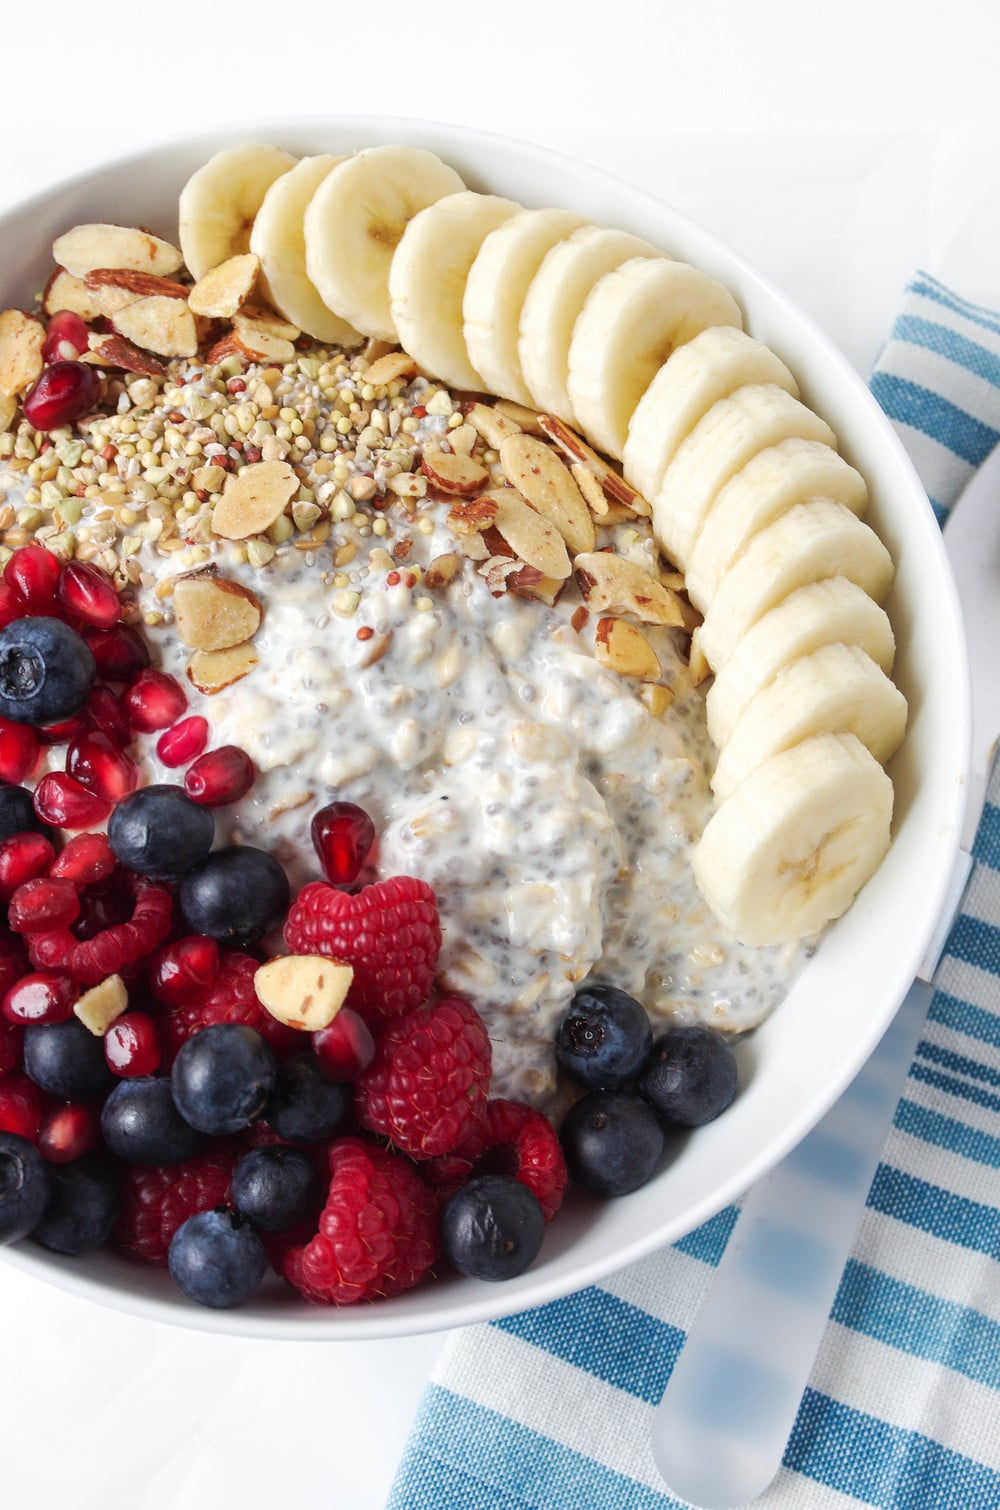 Vanilla Overnight Oat Breakfast Bowl with Fruit from theforkedspoon.com on foodiecrush.com